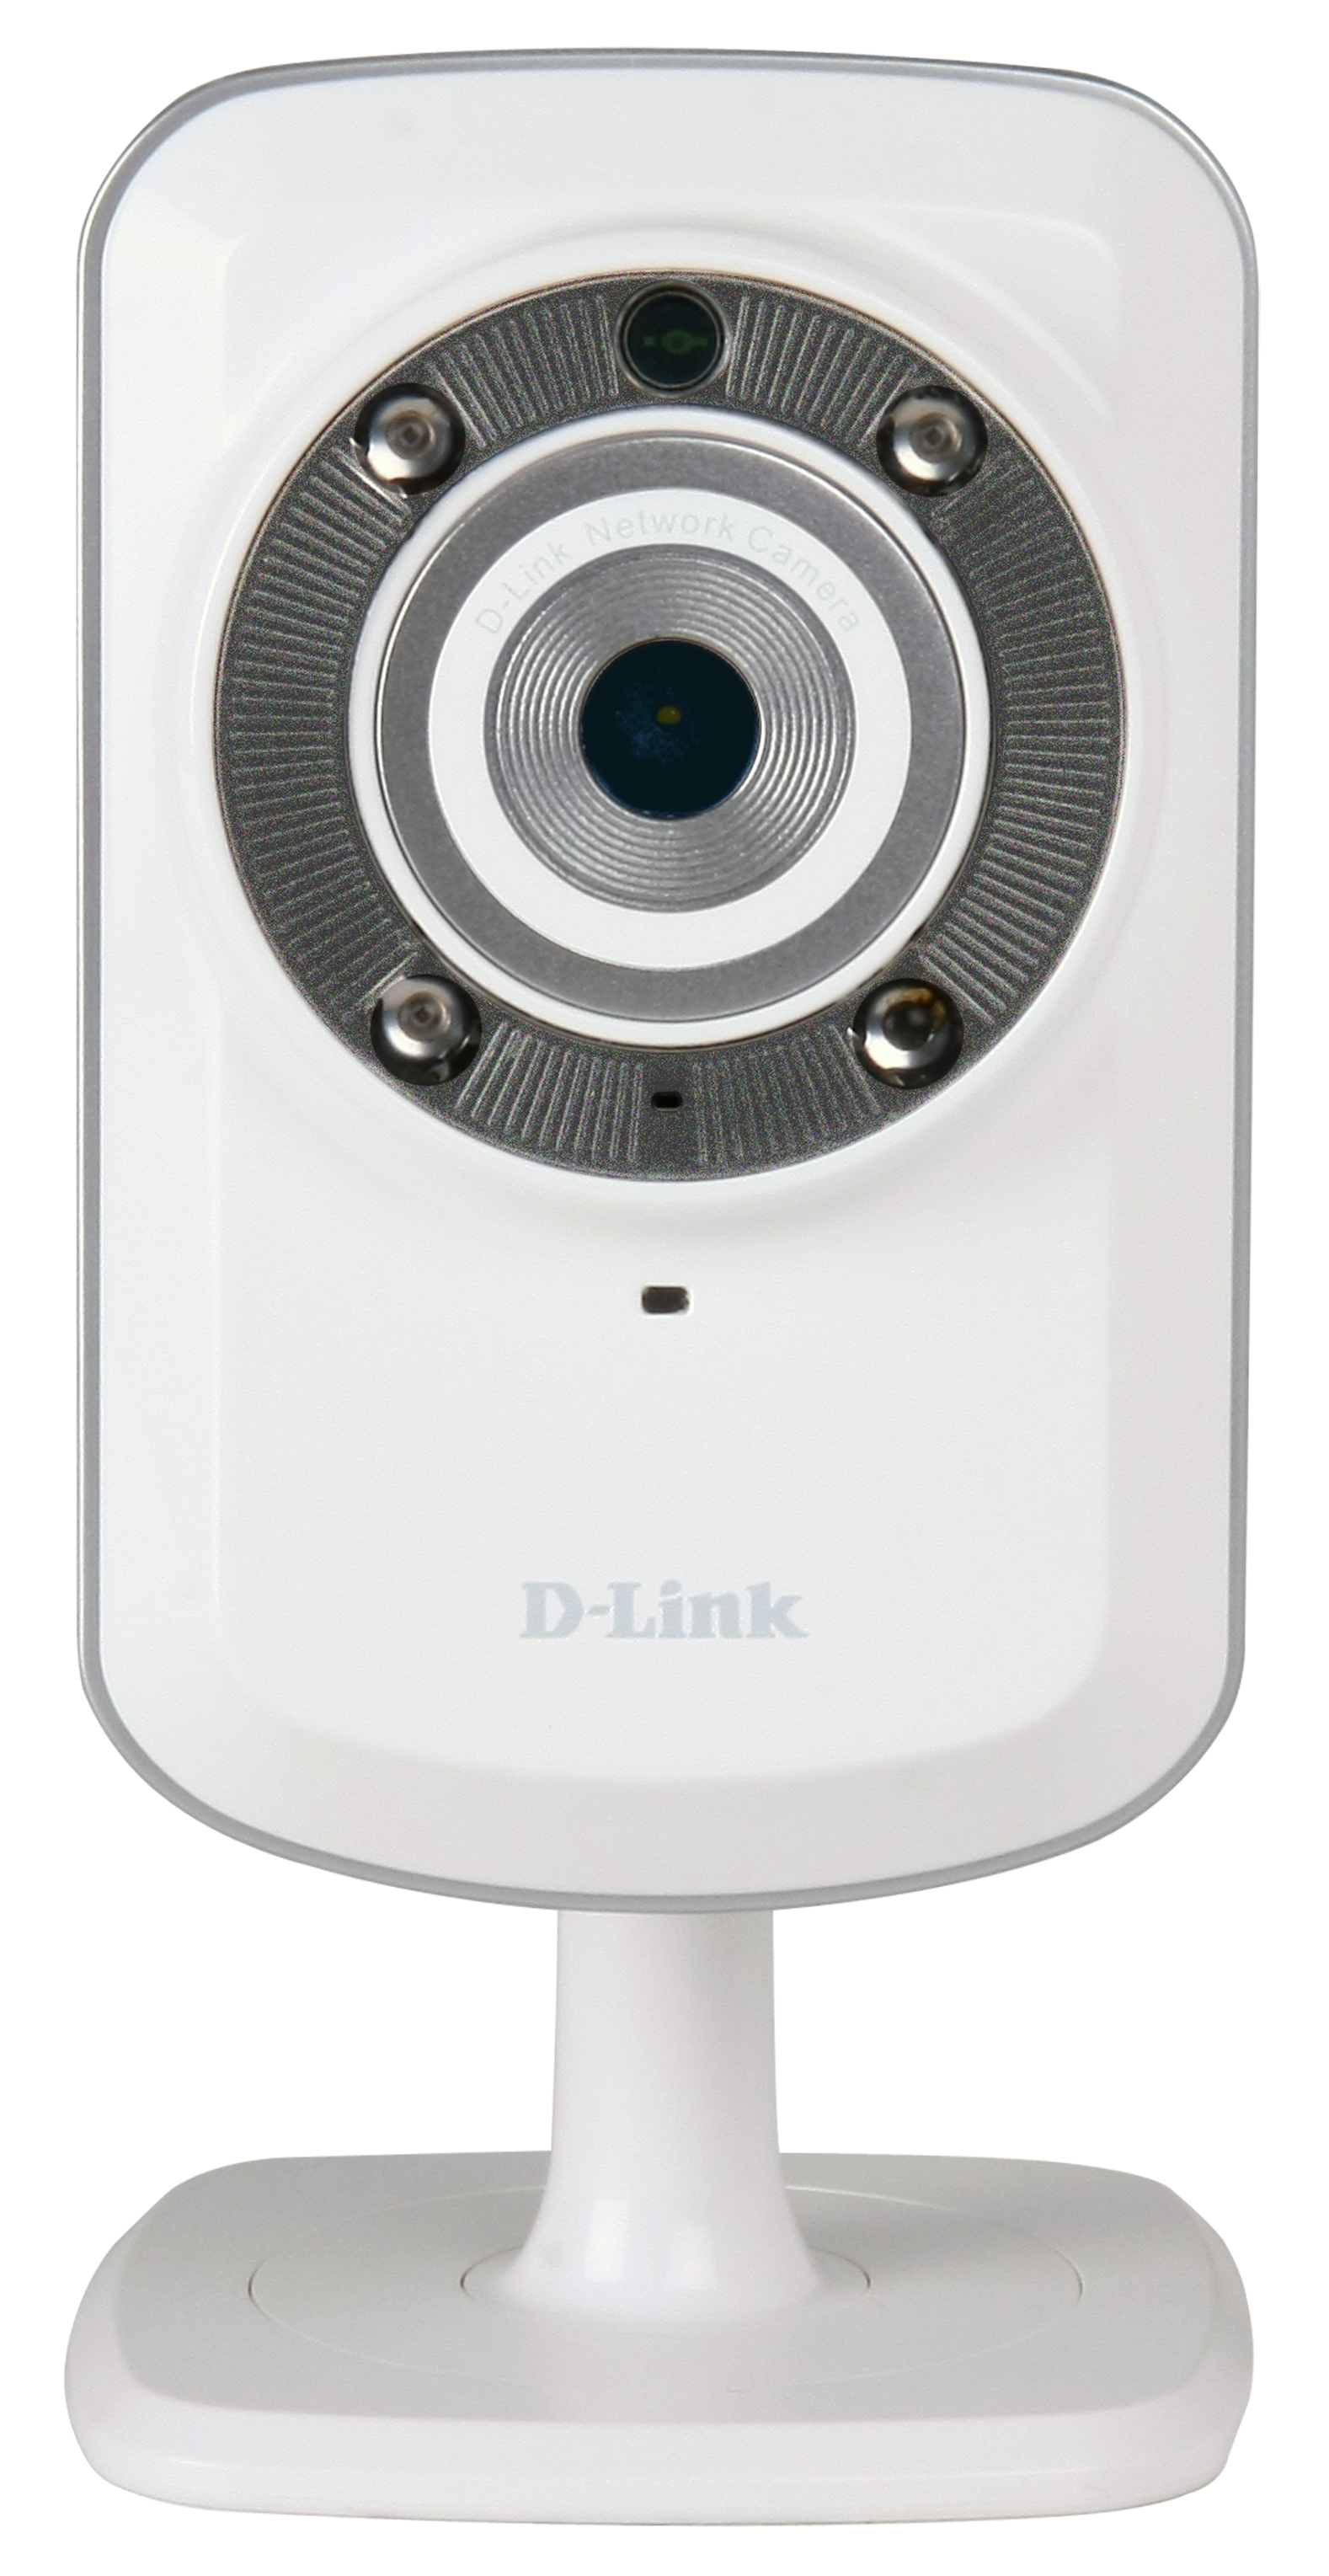 mydlink Wireless N Day/Night network camera